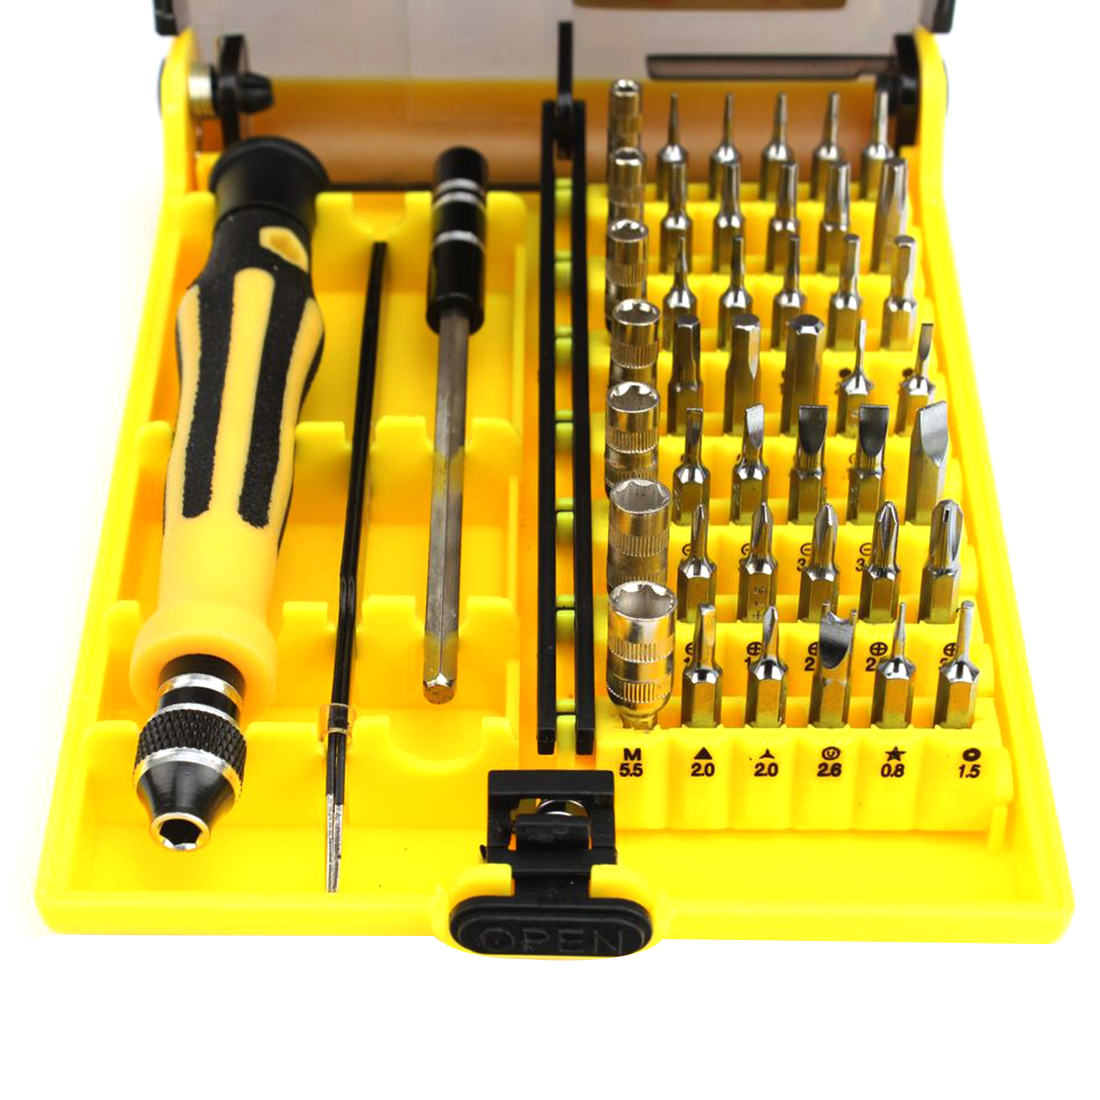 цена на Professional Torx Screwdriver Set 45 in 1 Precision For Watch Computer for iPhone Samsung Smart Phone Repair Dismantle Tools